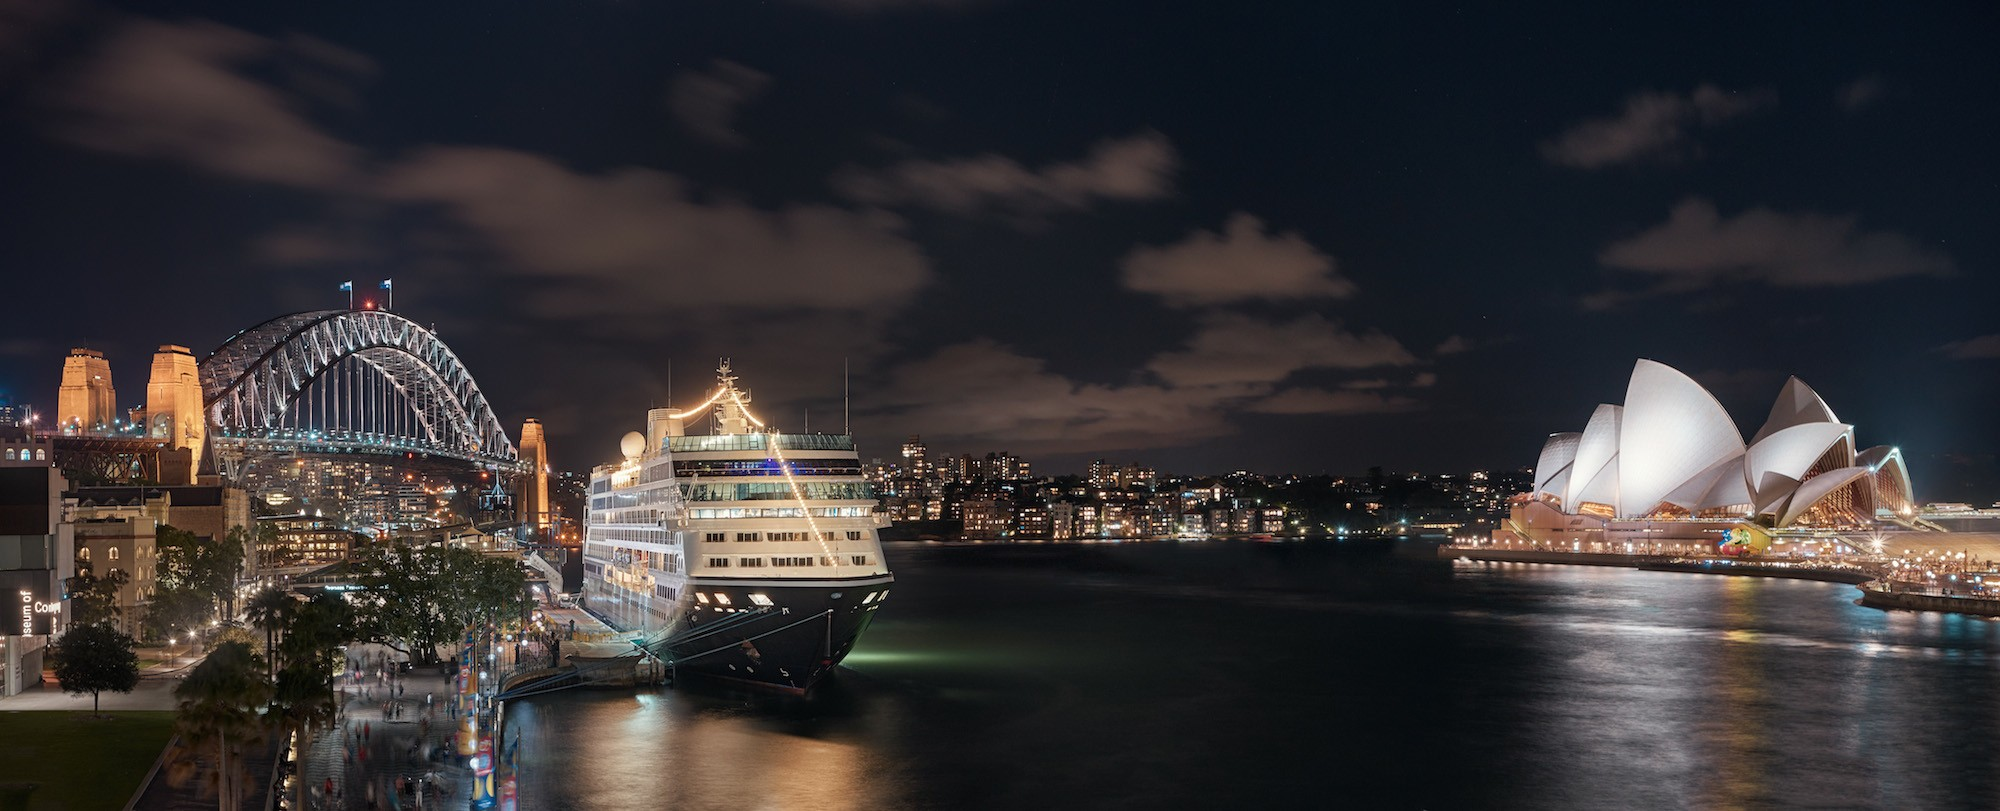 Azamara Club Cruises This Magnificent LIfe